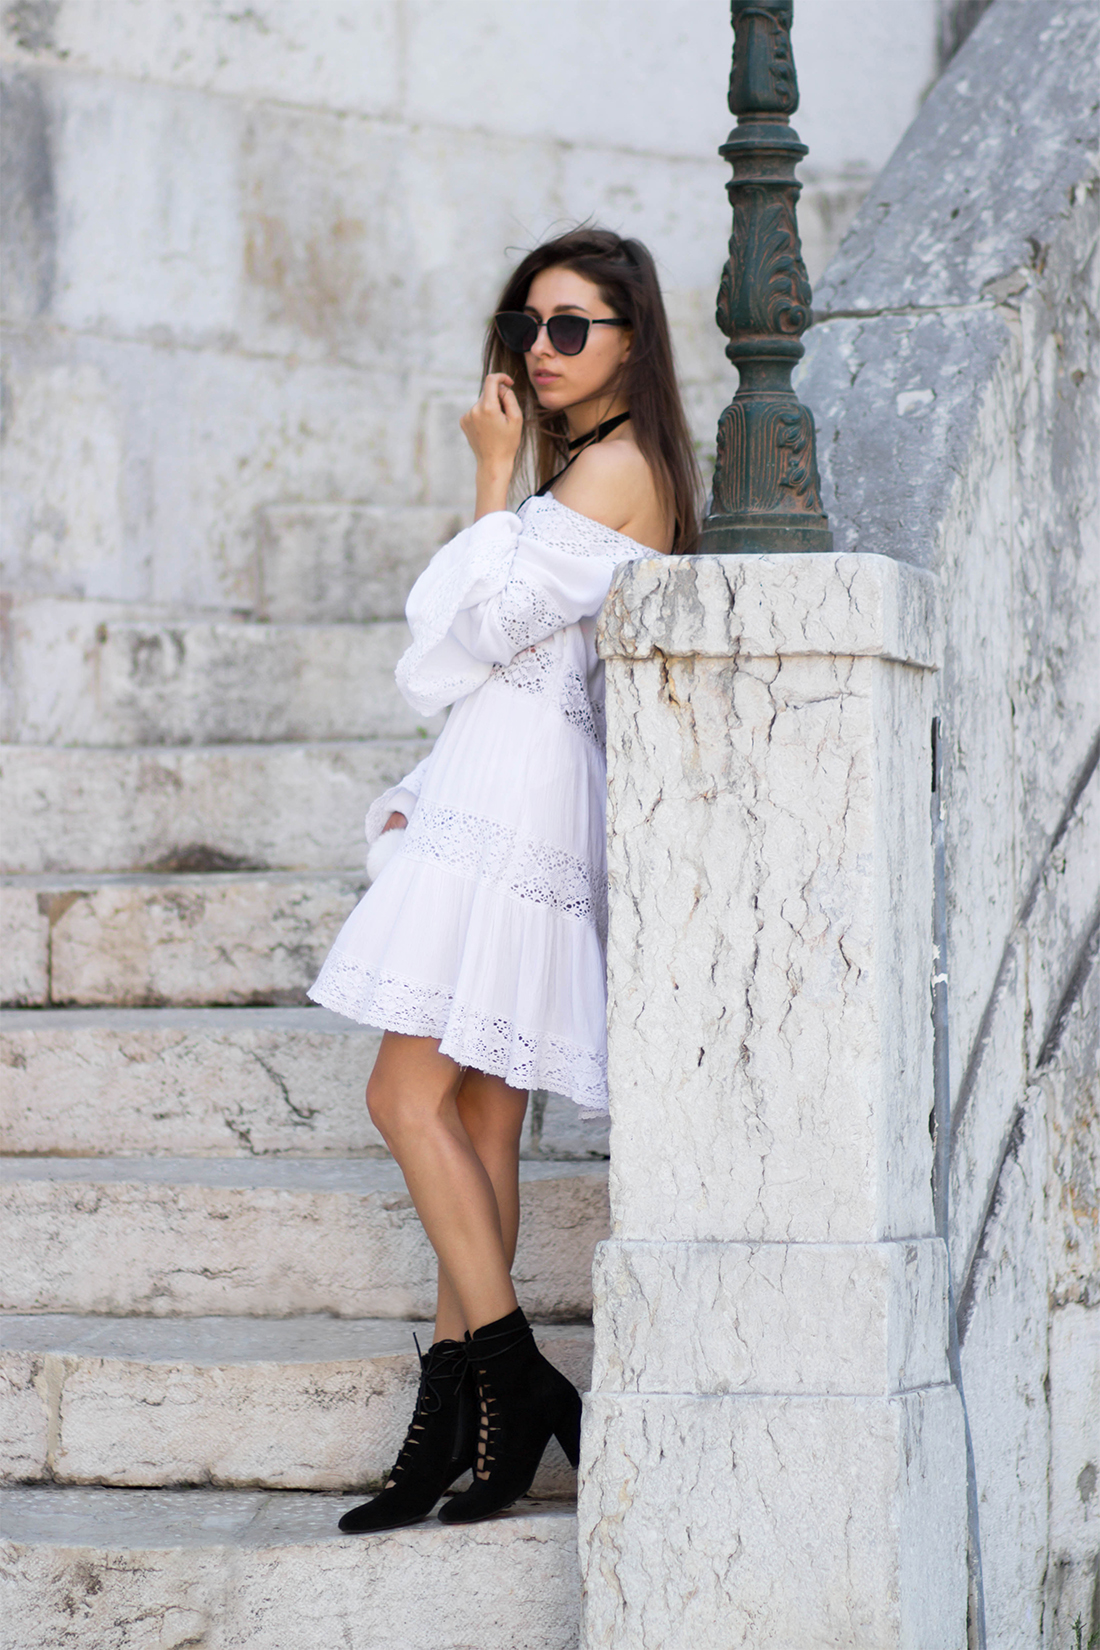 white dress & lace up boots